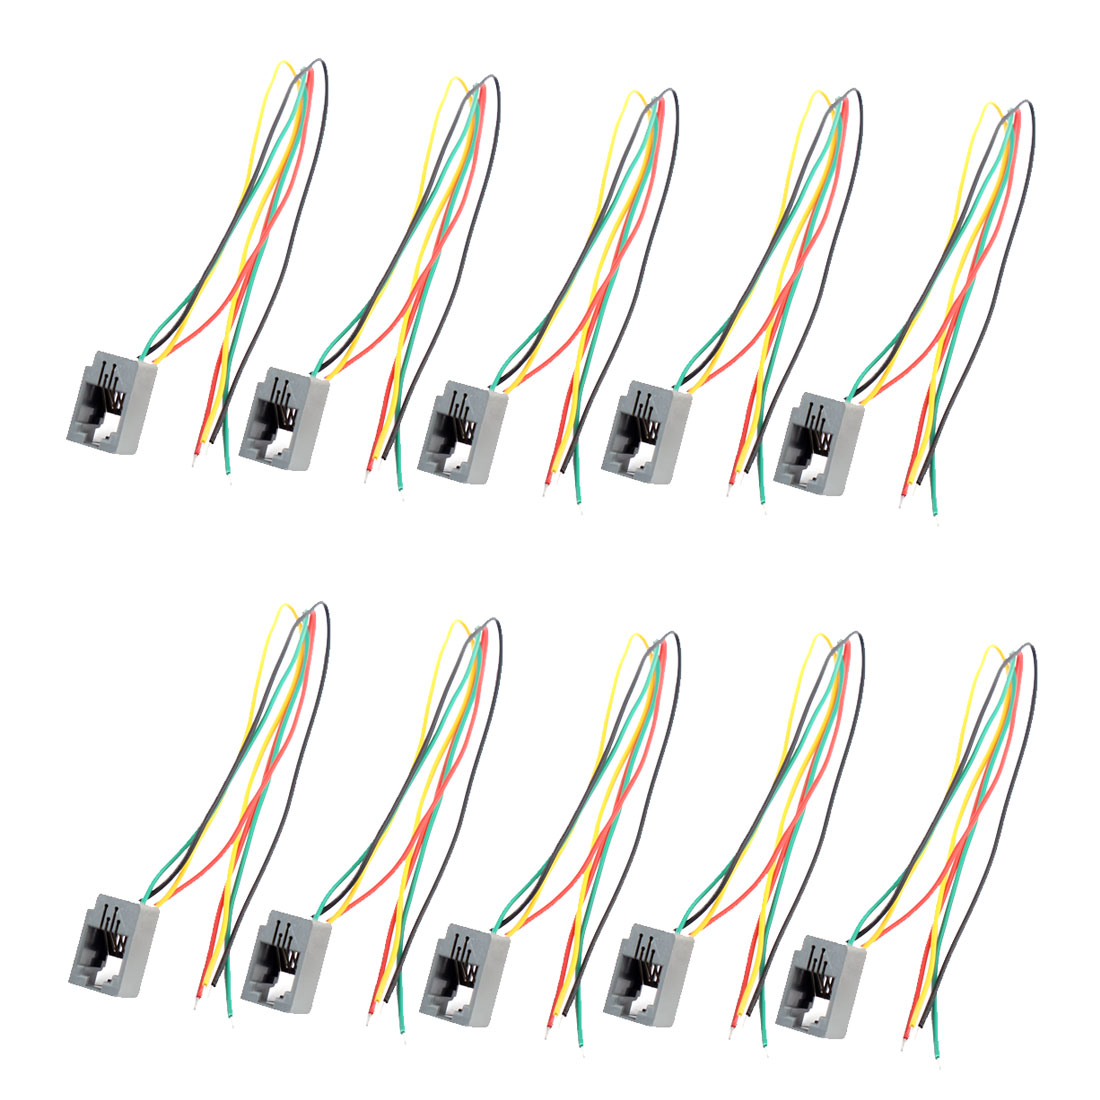 10 Pcs 616E 4P4C RJ9 Female Telephone Connector Adapter w 4 Wires Cable 8cm